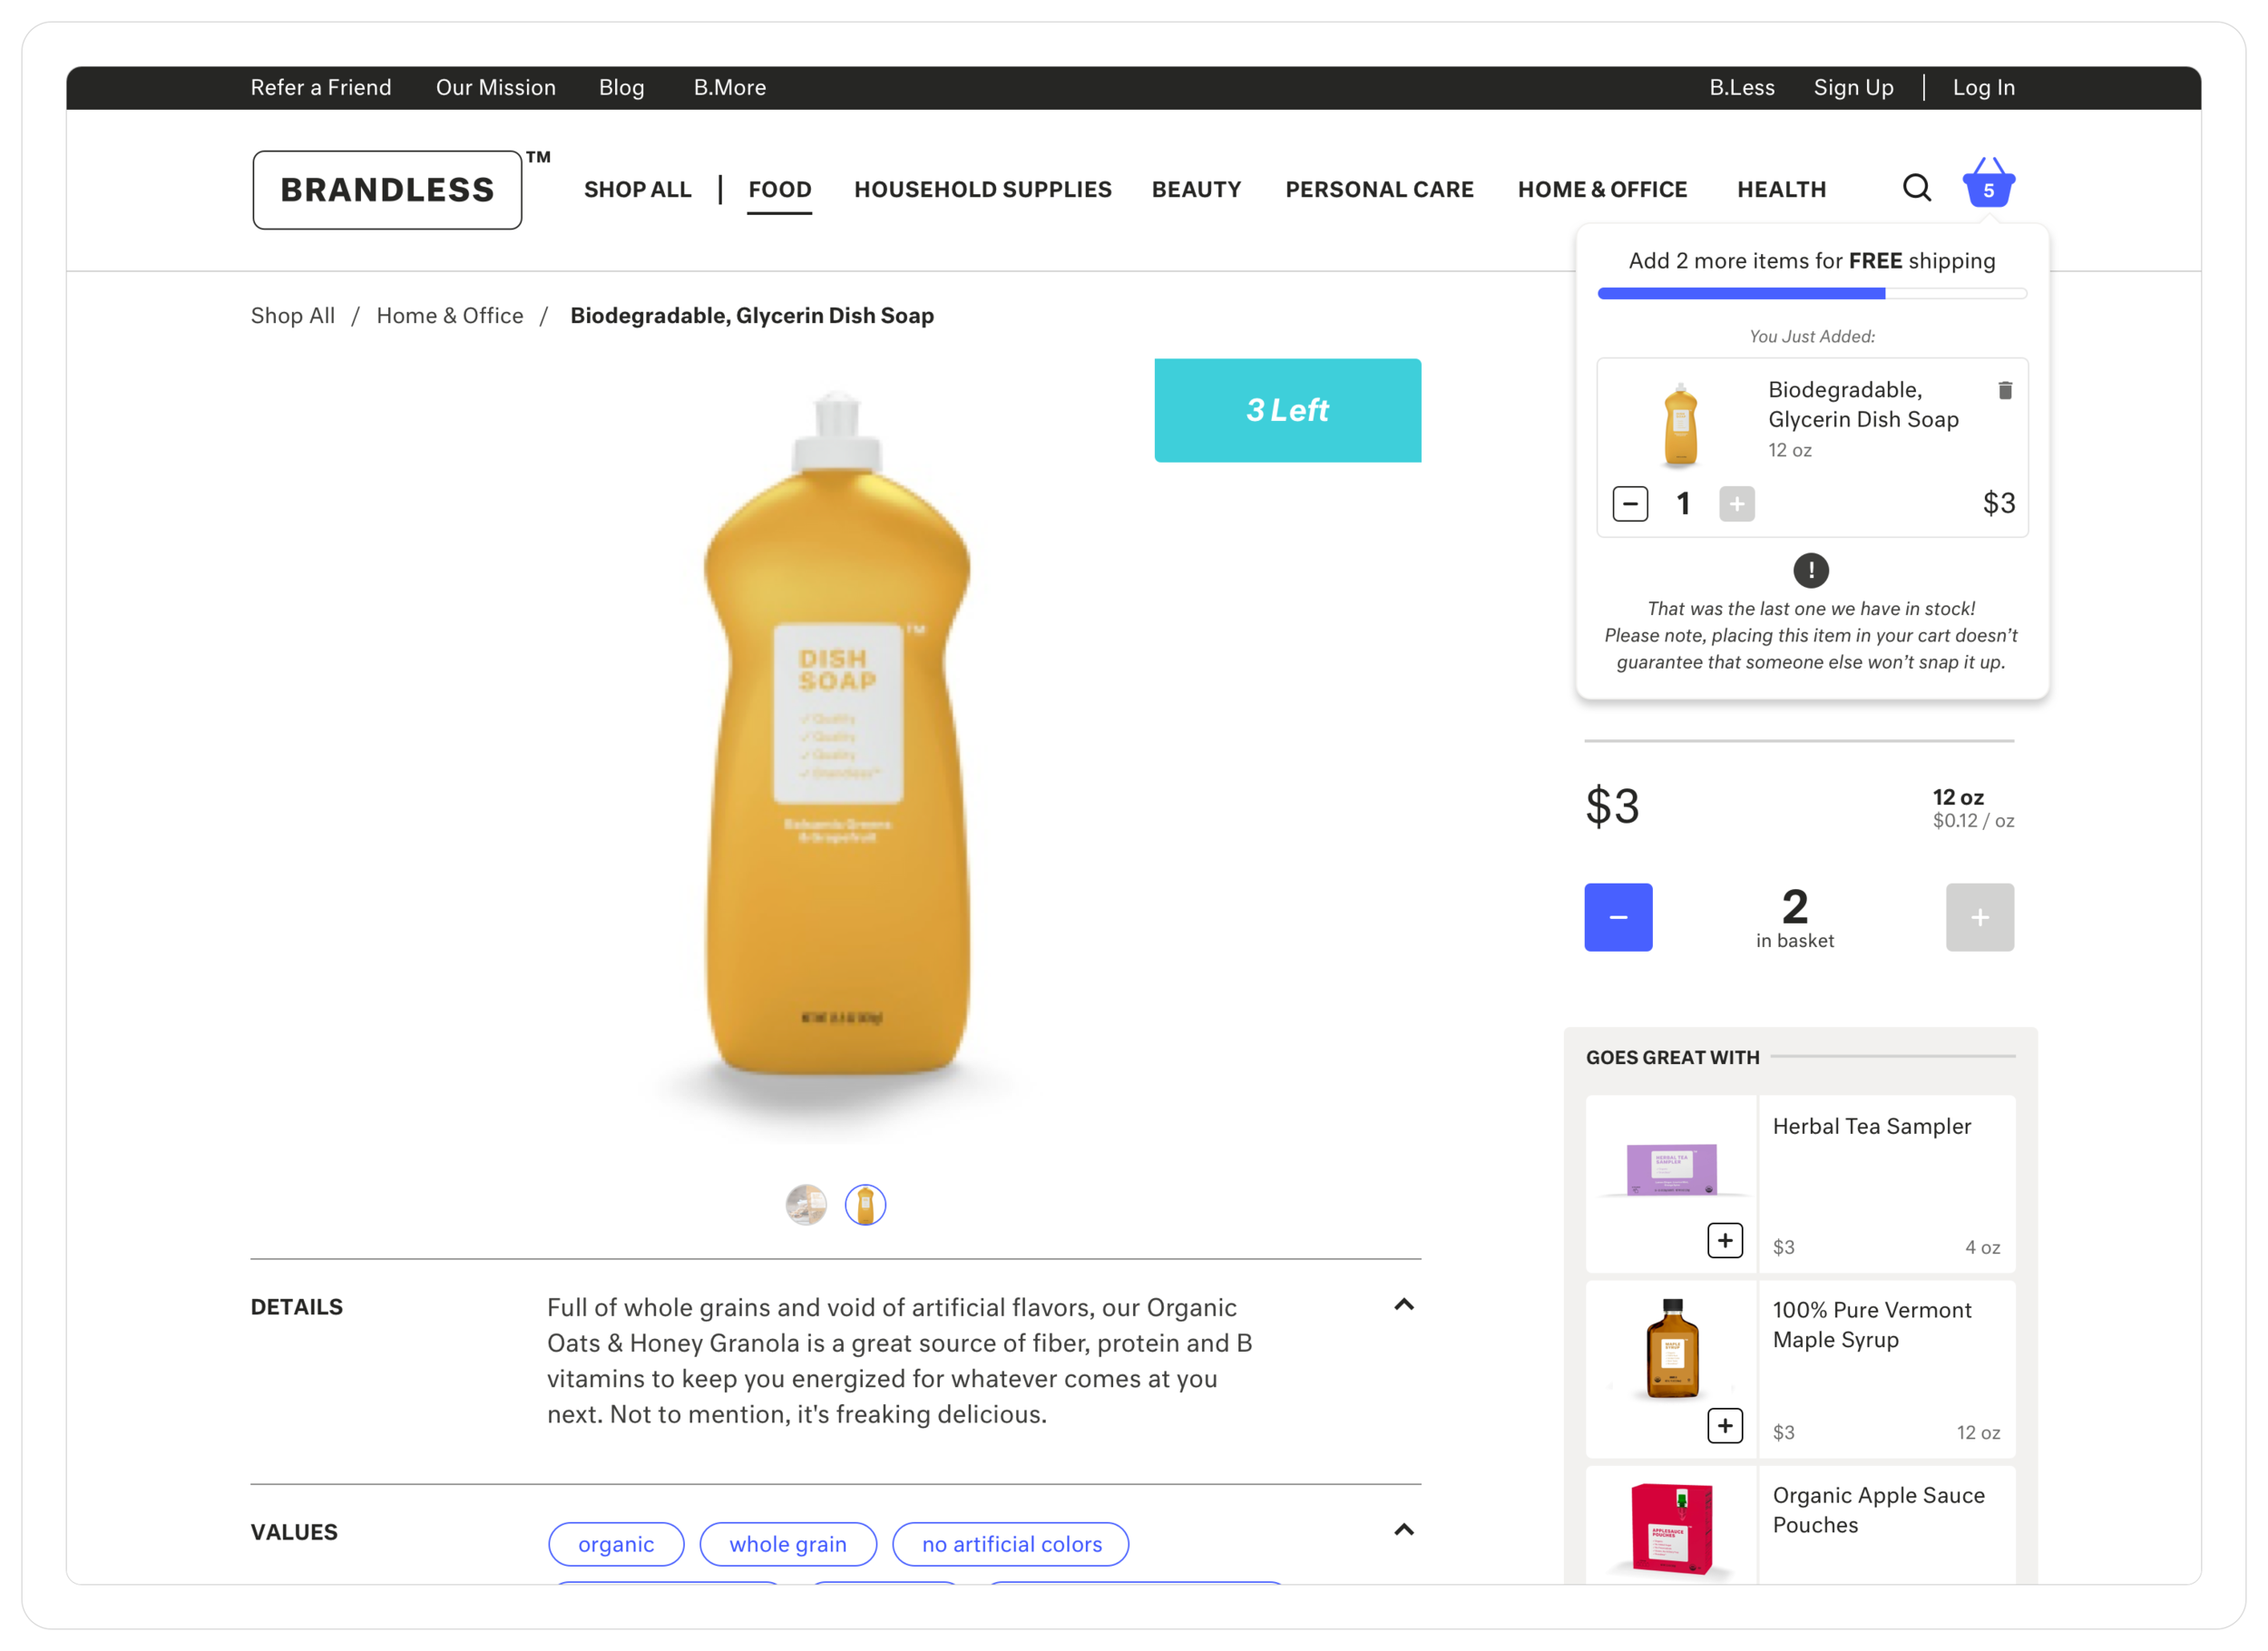 The product detail page allows users to view more details for individual products. It also reuses mobile components in the lefthand column to allow users to shop related products.